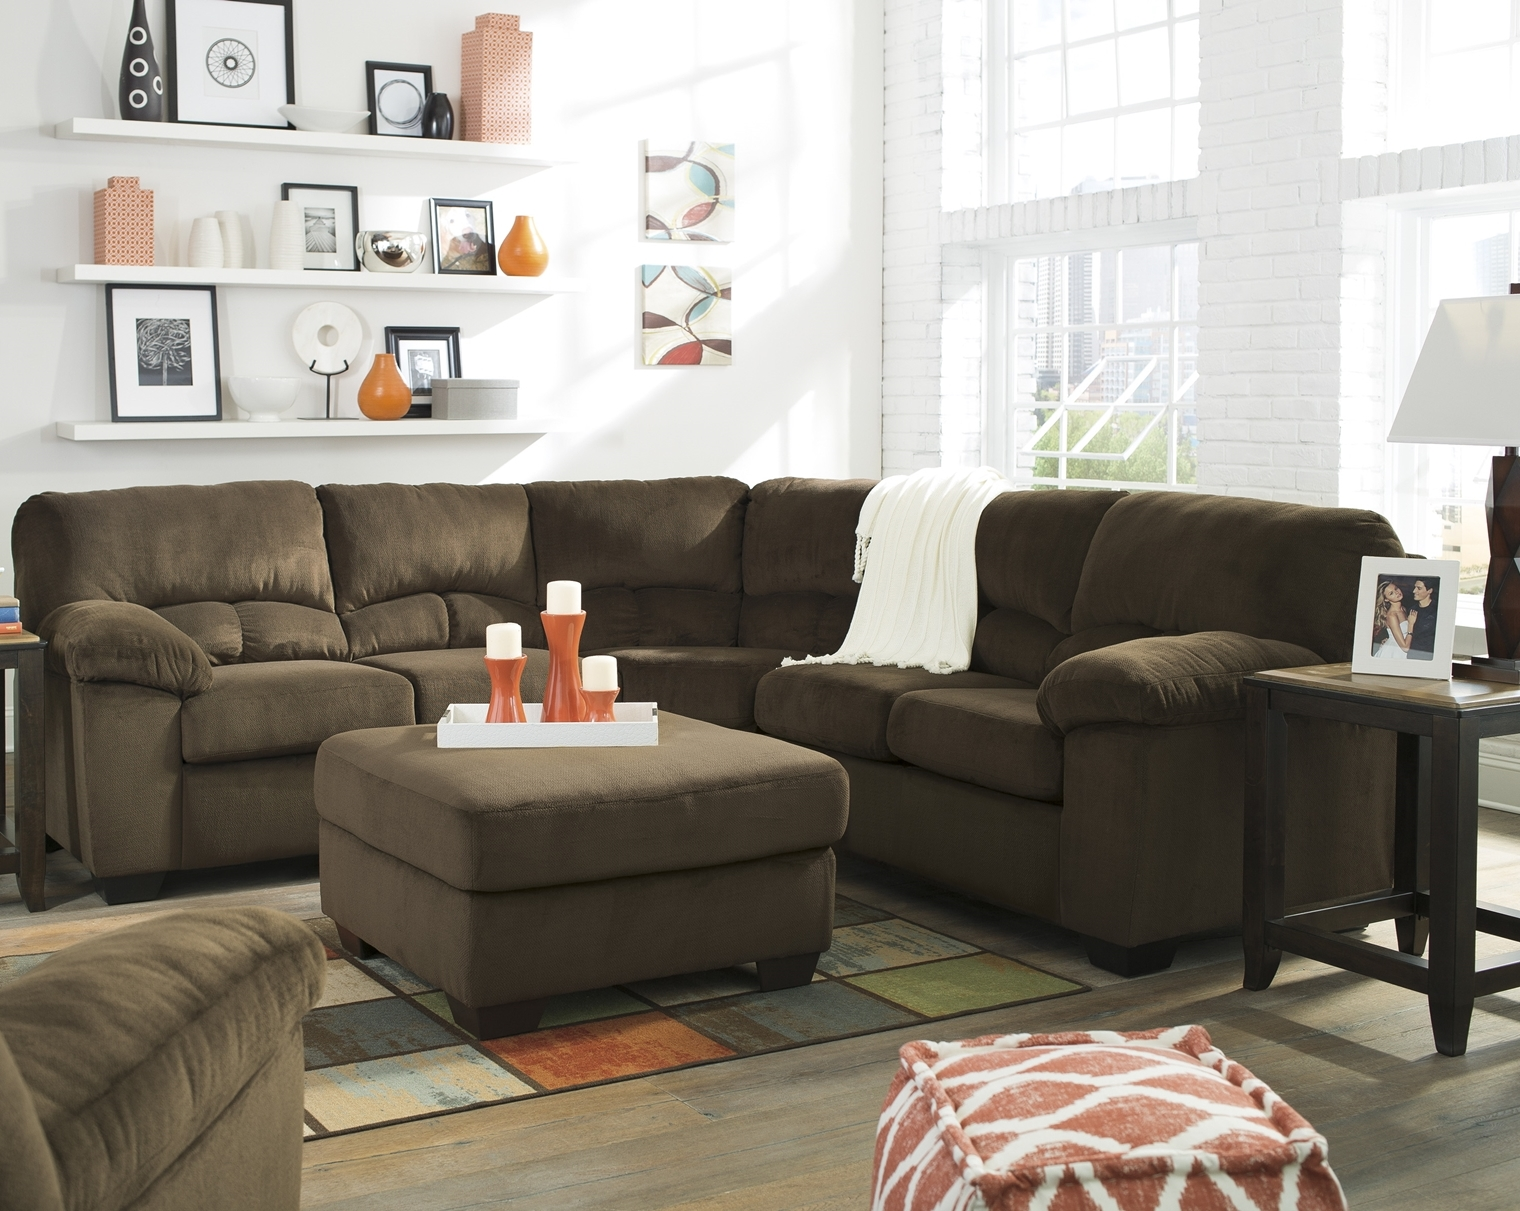 Dailey sectional 95403 dallas designer furniture 4 less for Furniture 4 less dallas tx